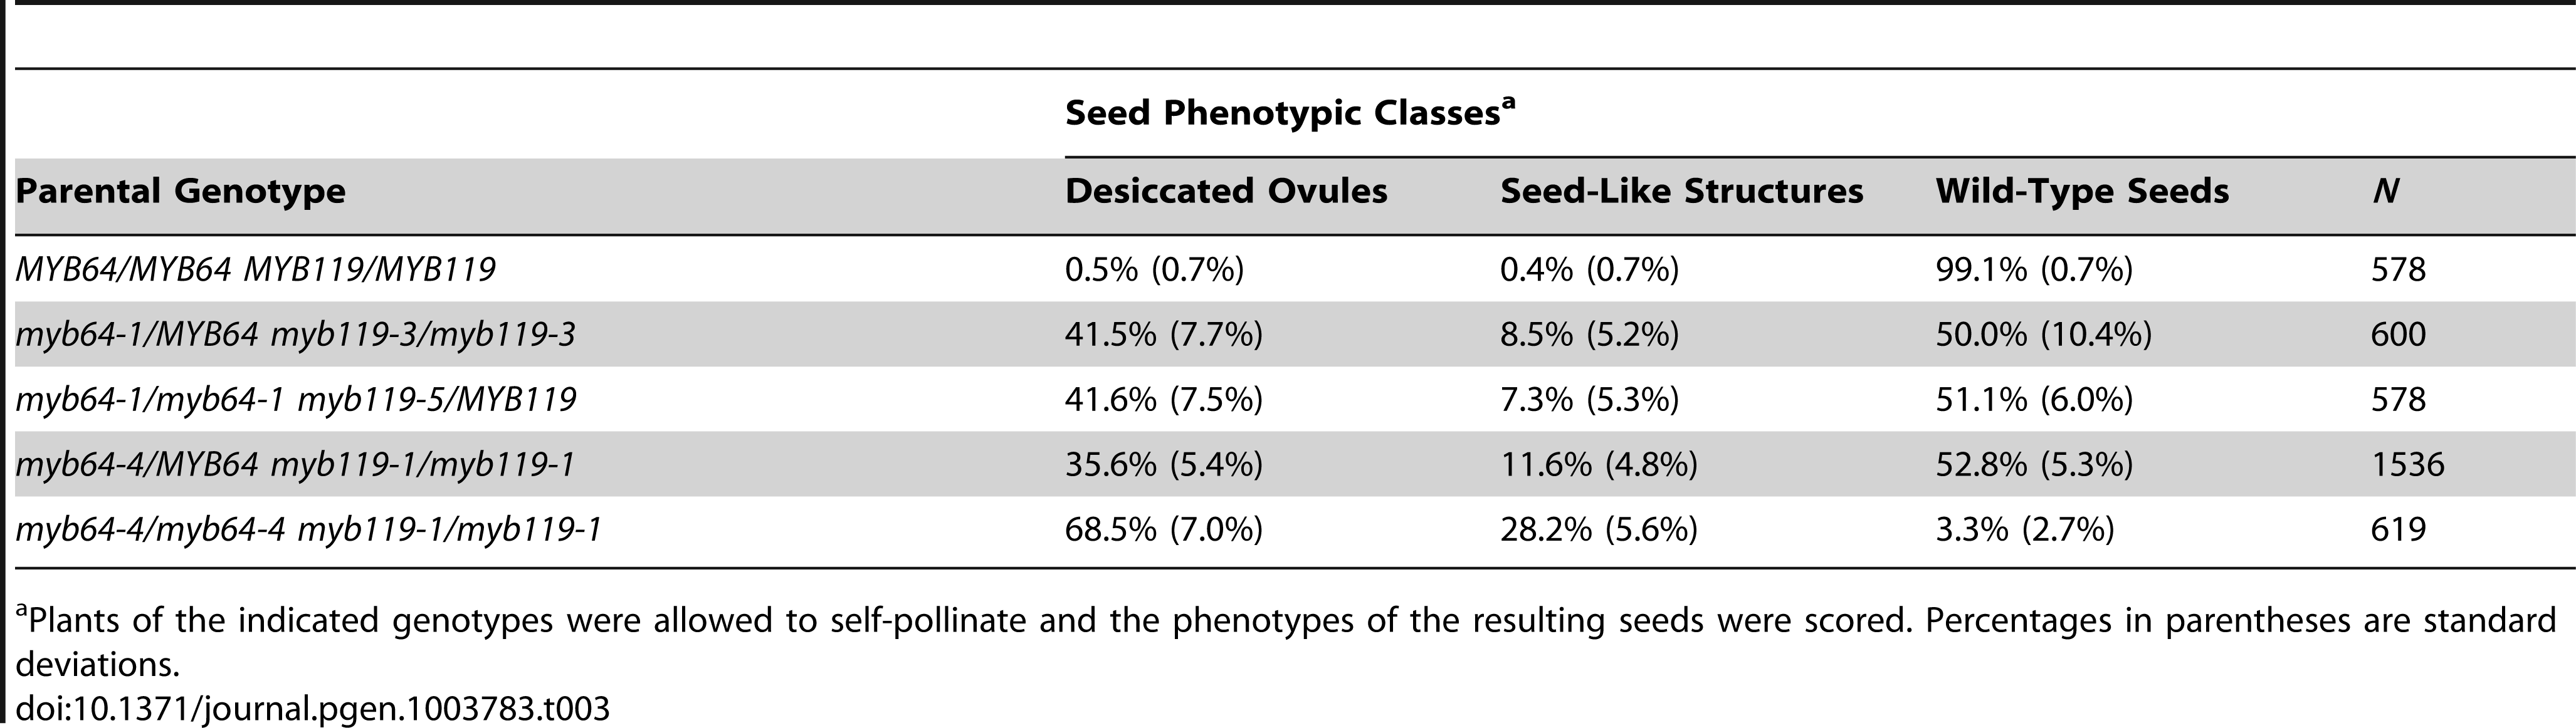 Analysis of <i>myb64 myb119</i> seed phenotypes.